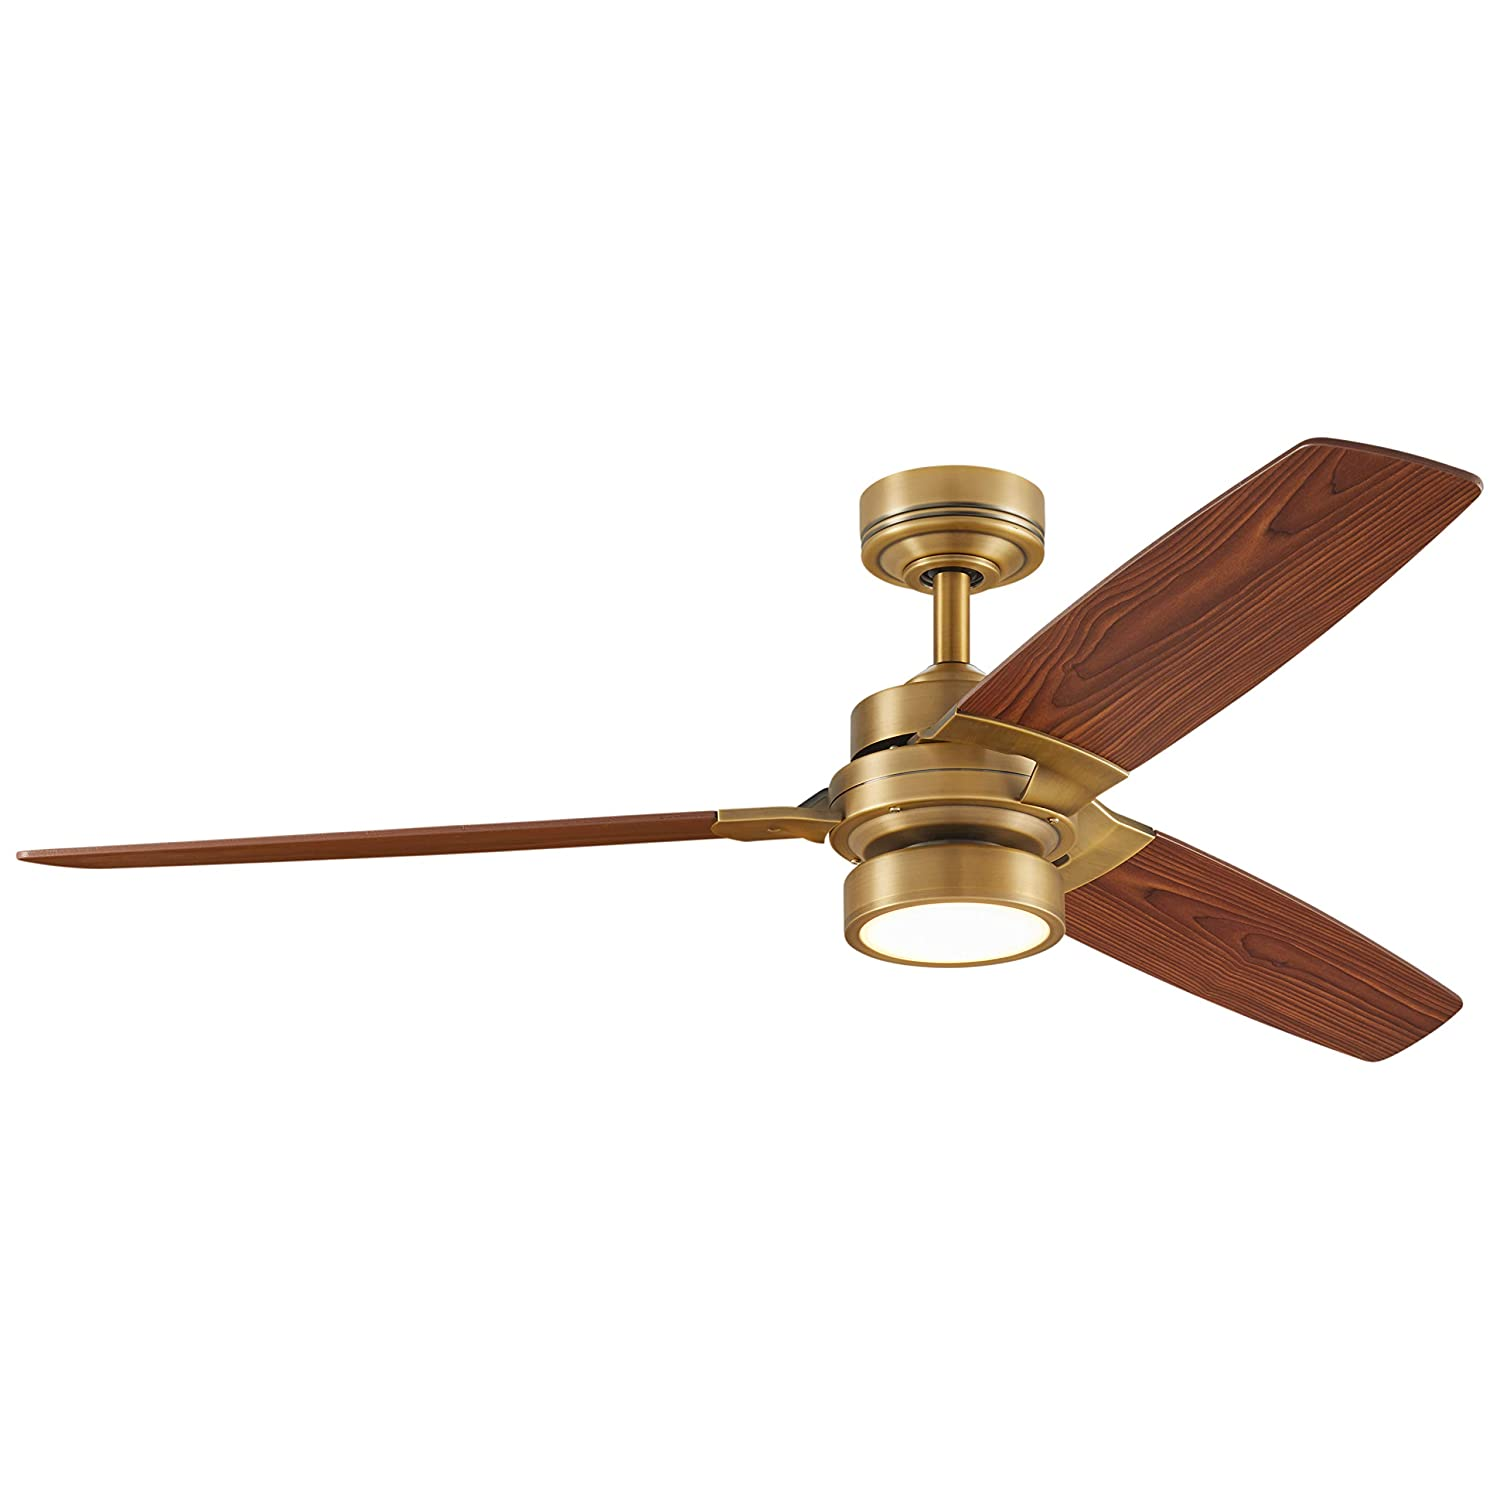 Rivet Modern Remote Control AC Motor Ceiling Flush Mount Fan with 18W LED Light – 52 x 52 x 7.6 Inches, Aged Brass with Maple Finish Blades